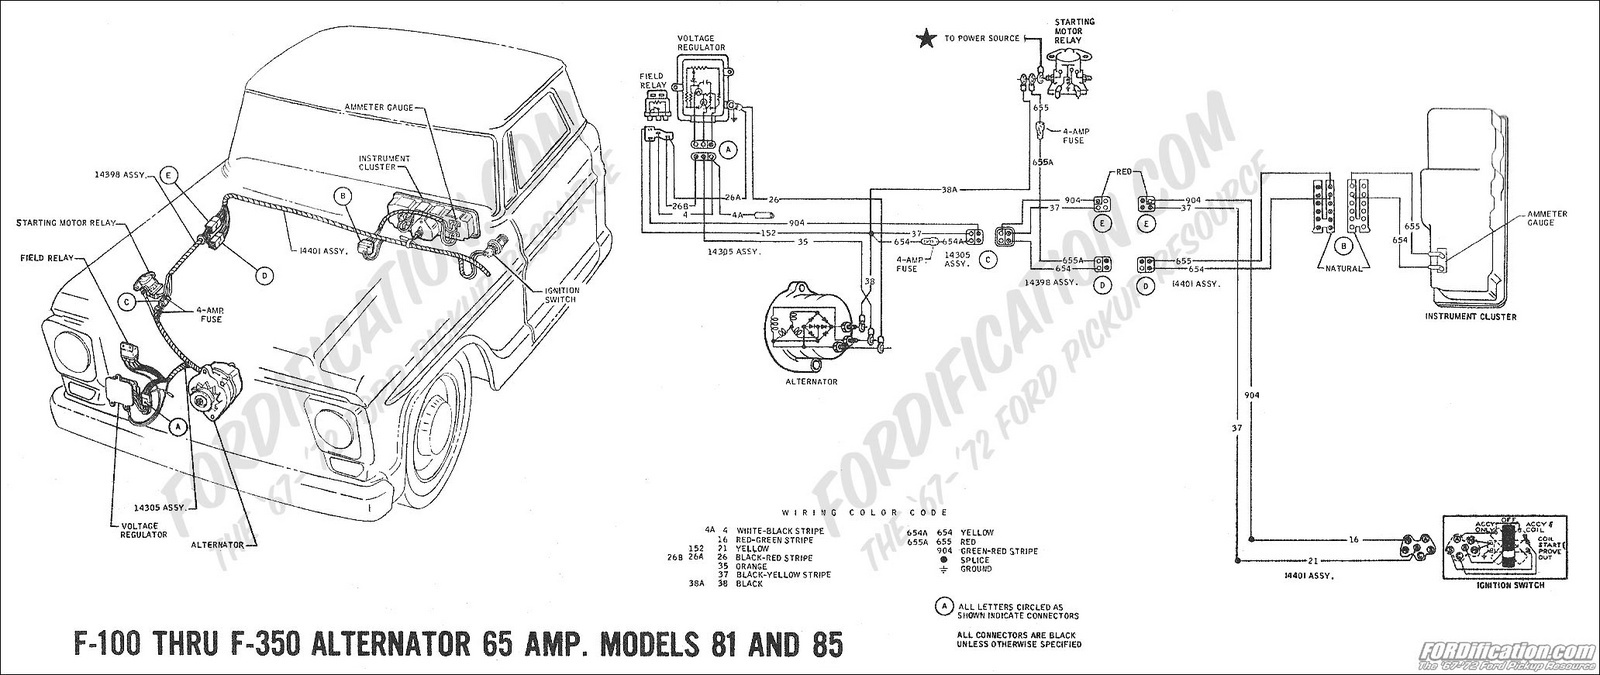 Chevy Alternator Regulator Wiring Diagram 1977 Schemes 1966 Ford Pu Diagrams Box Gm